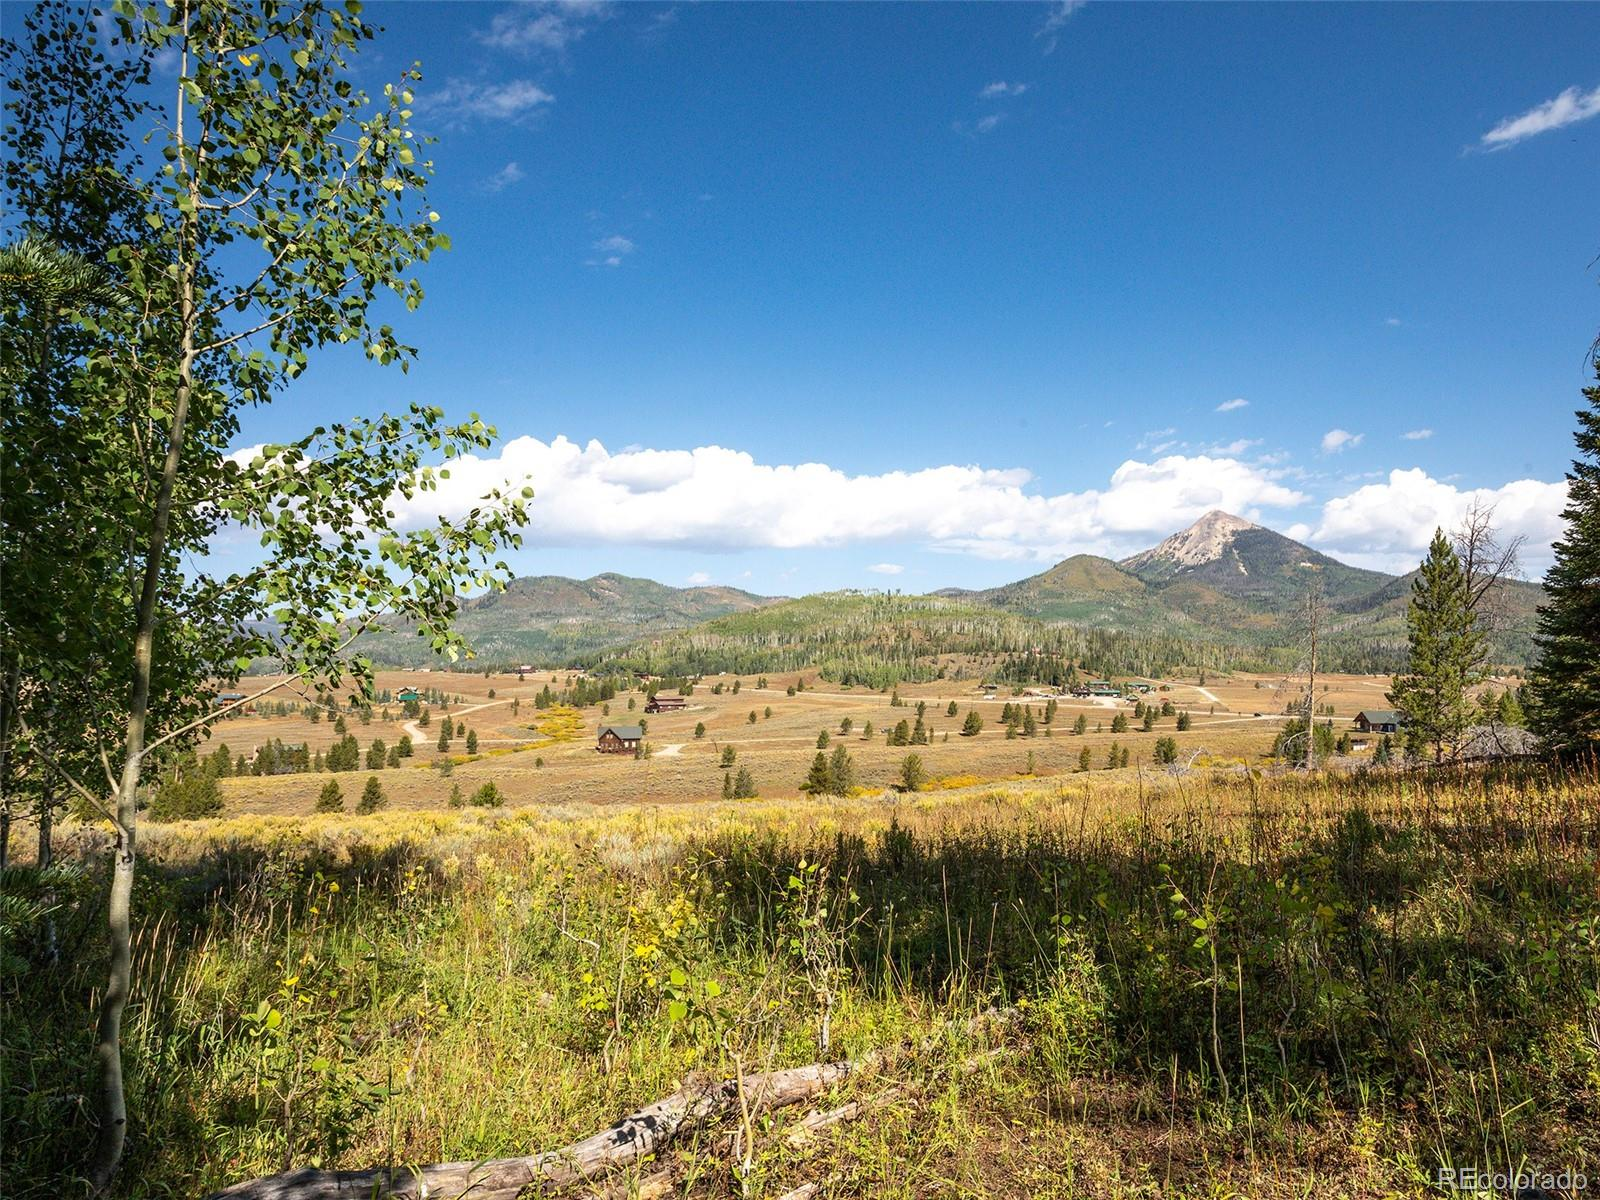 listing photo for MLS# 3410359